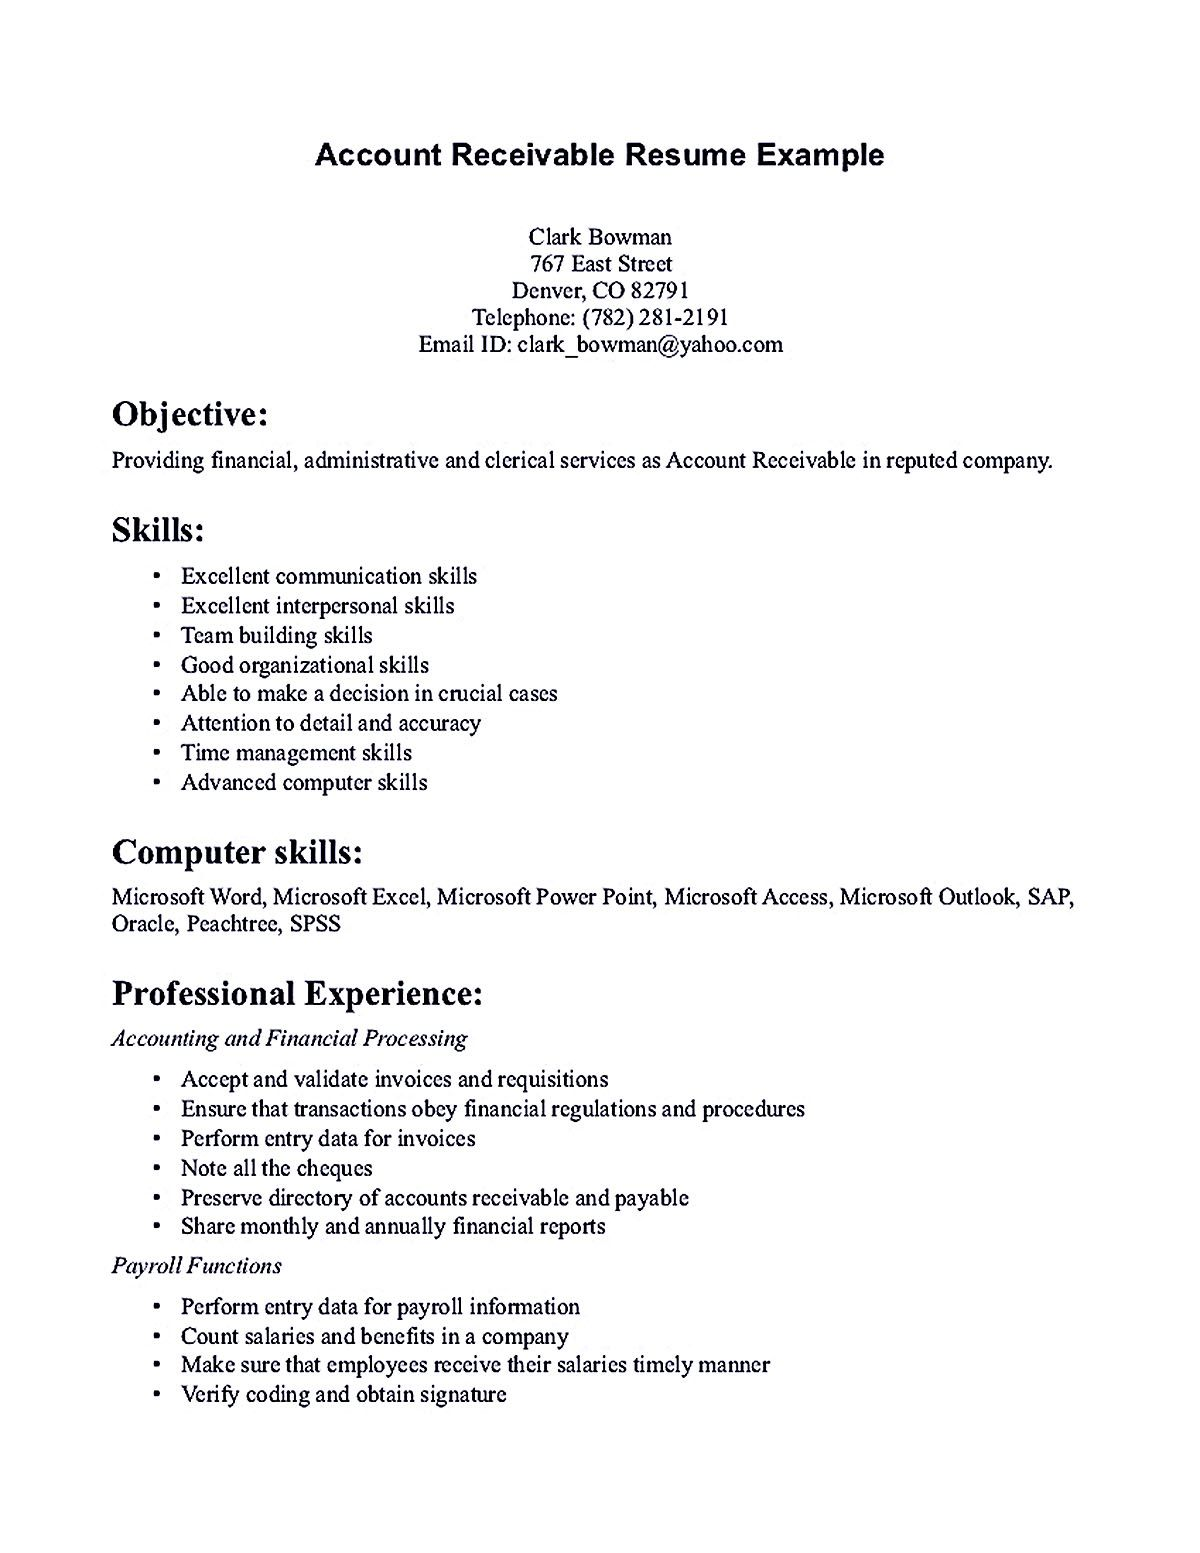 Accounts Payable And Receivable Resume Inspiration Account Receivable Resume Shows Both Technical And Interpersonal .